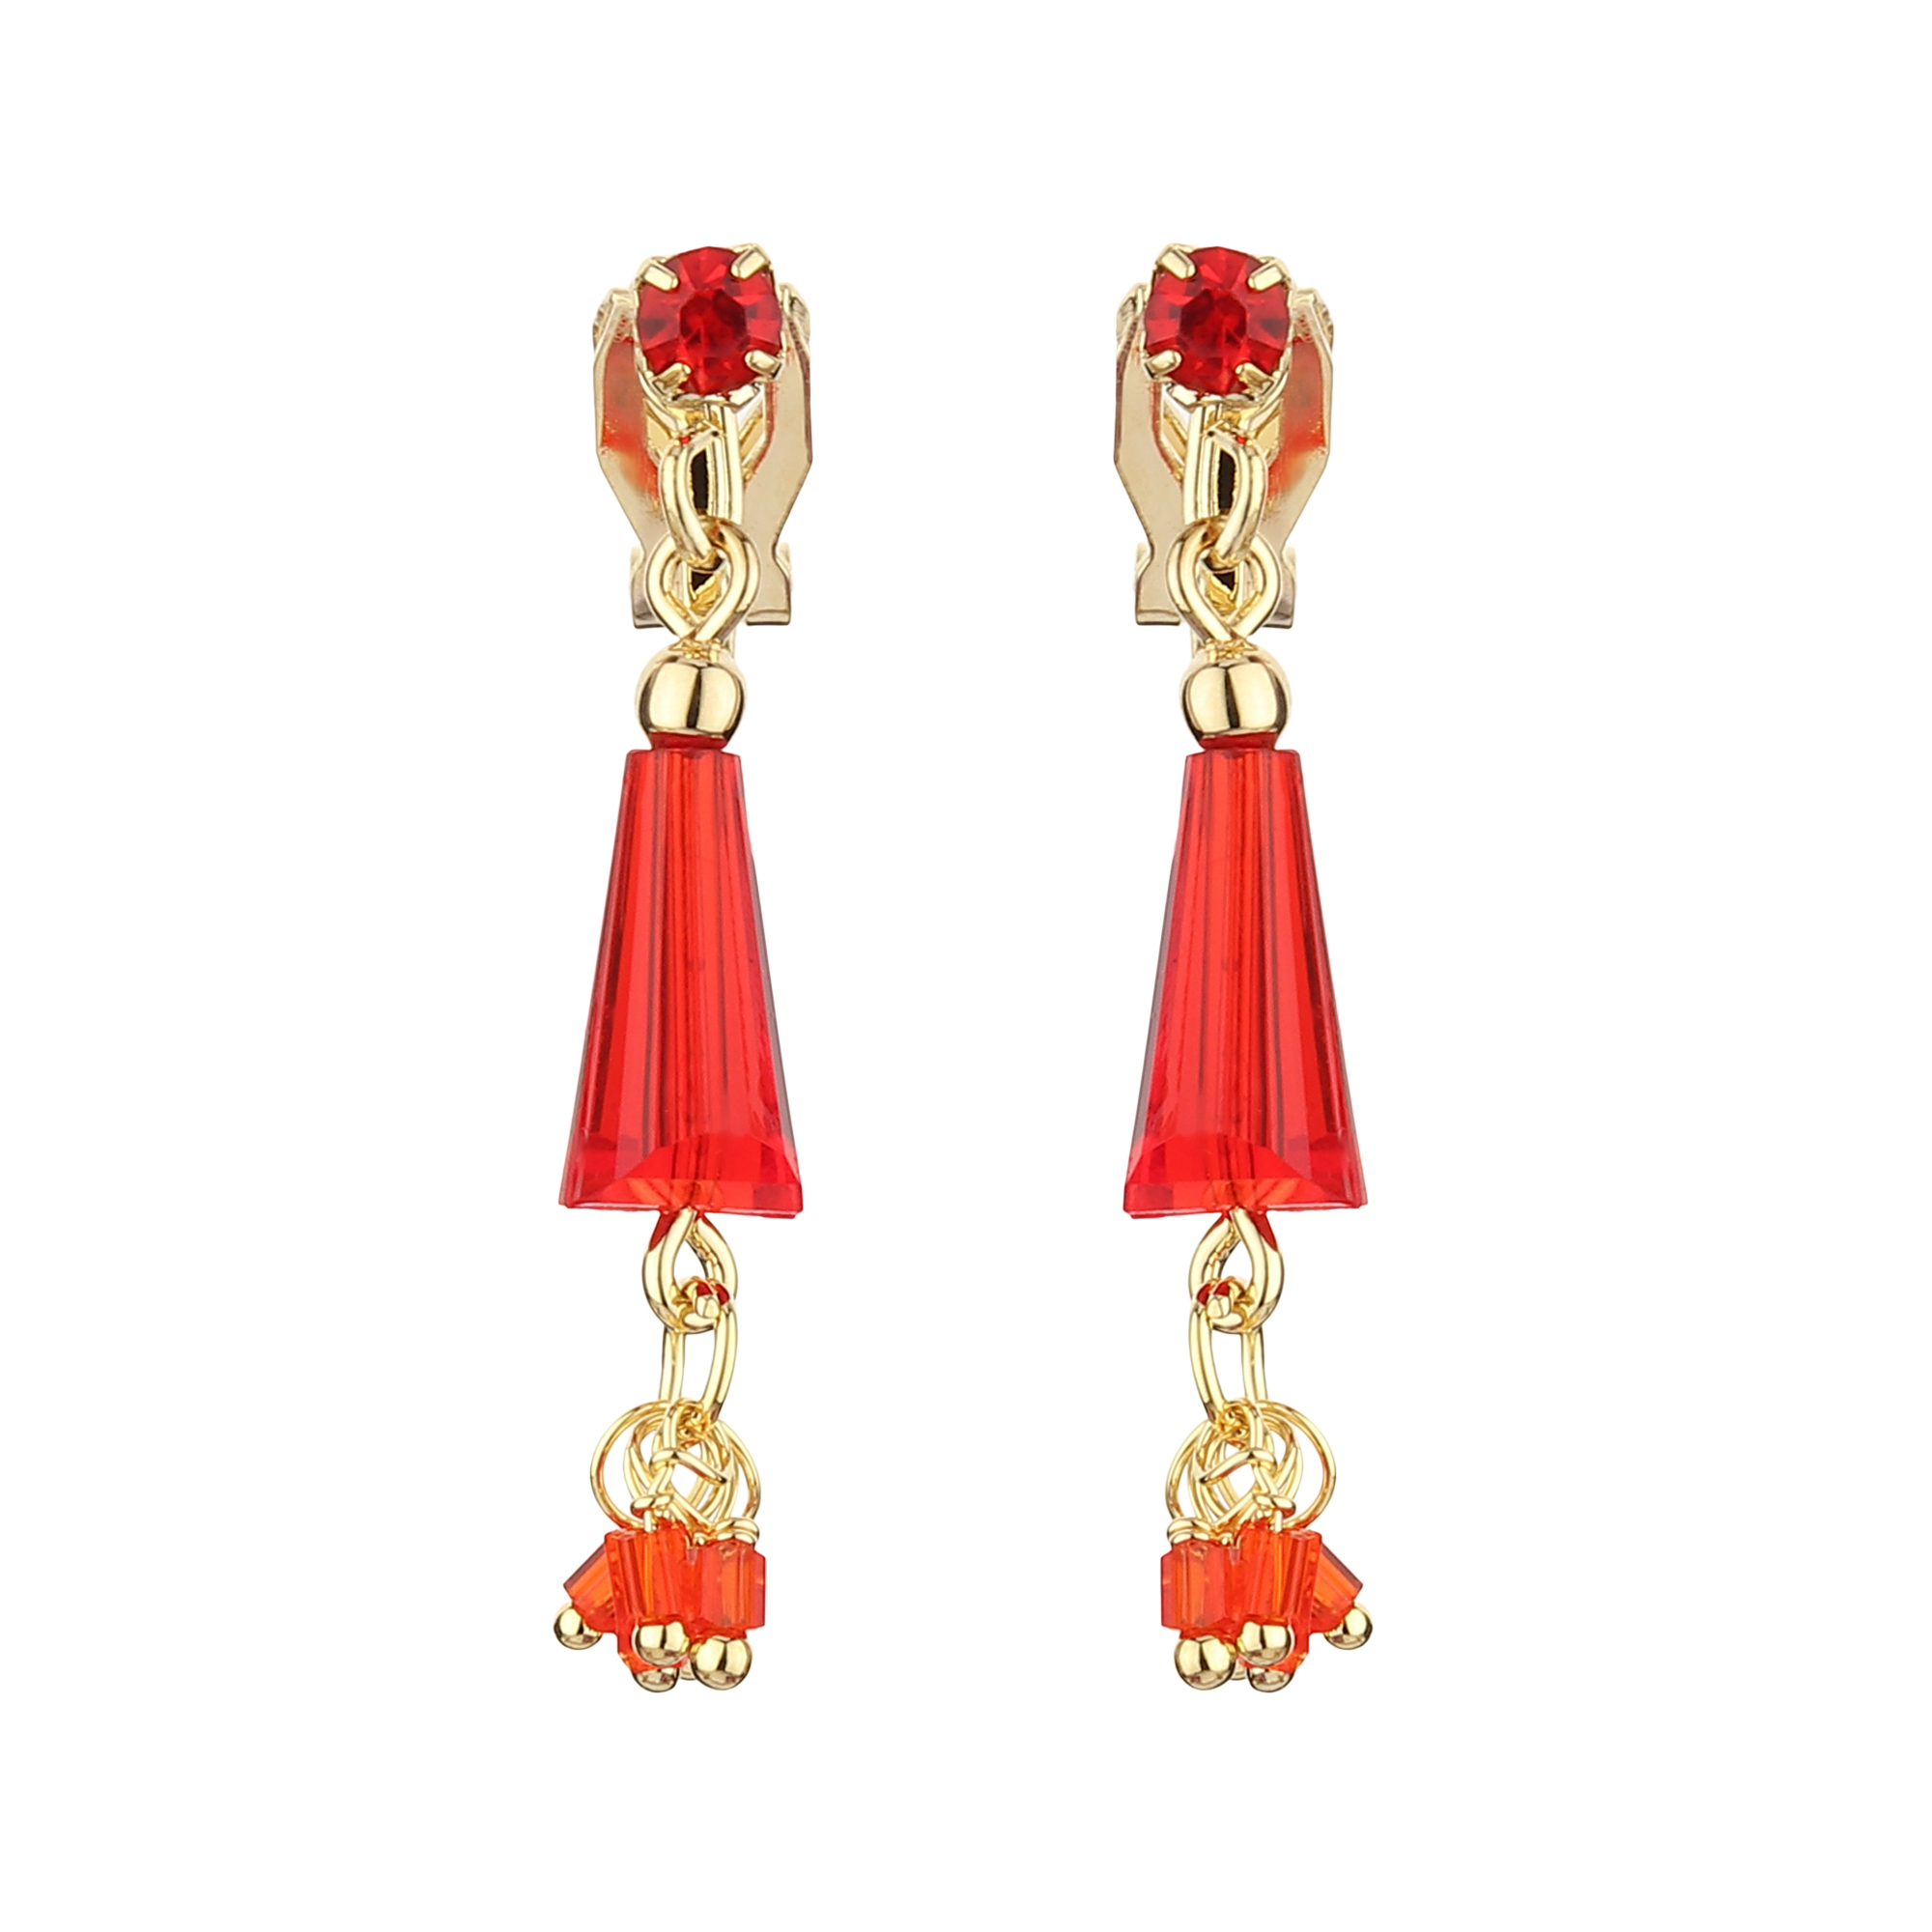 FirstBlush | FirstBlush Clip On Earrings for Non Piearced Ears for Women & Girls; Plating: Gold; Color: Red; Size: 35 X 5mm; Wt.: 3gm. (MIEC104M154)